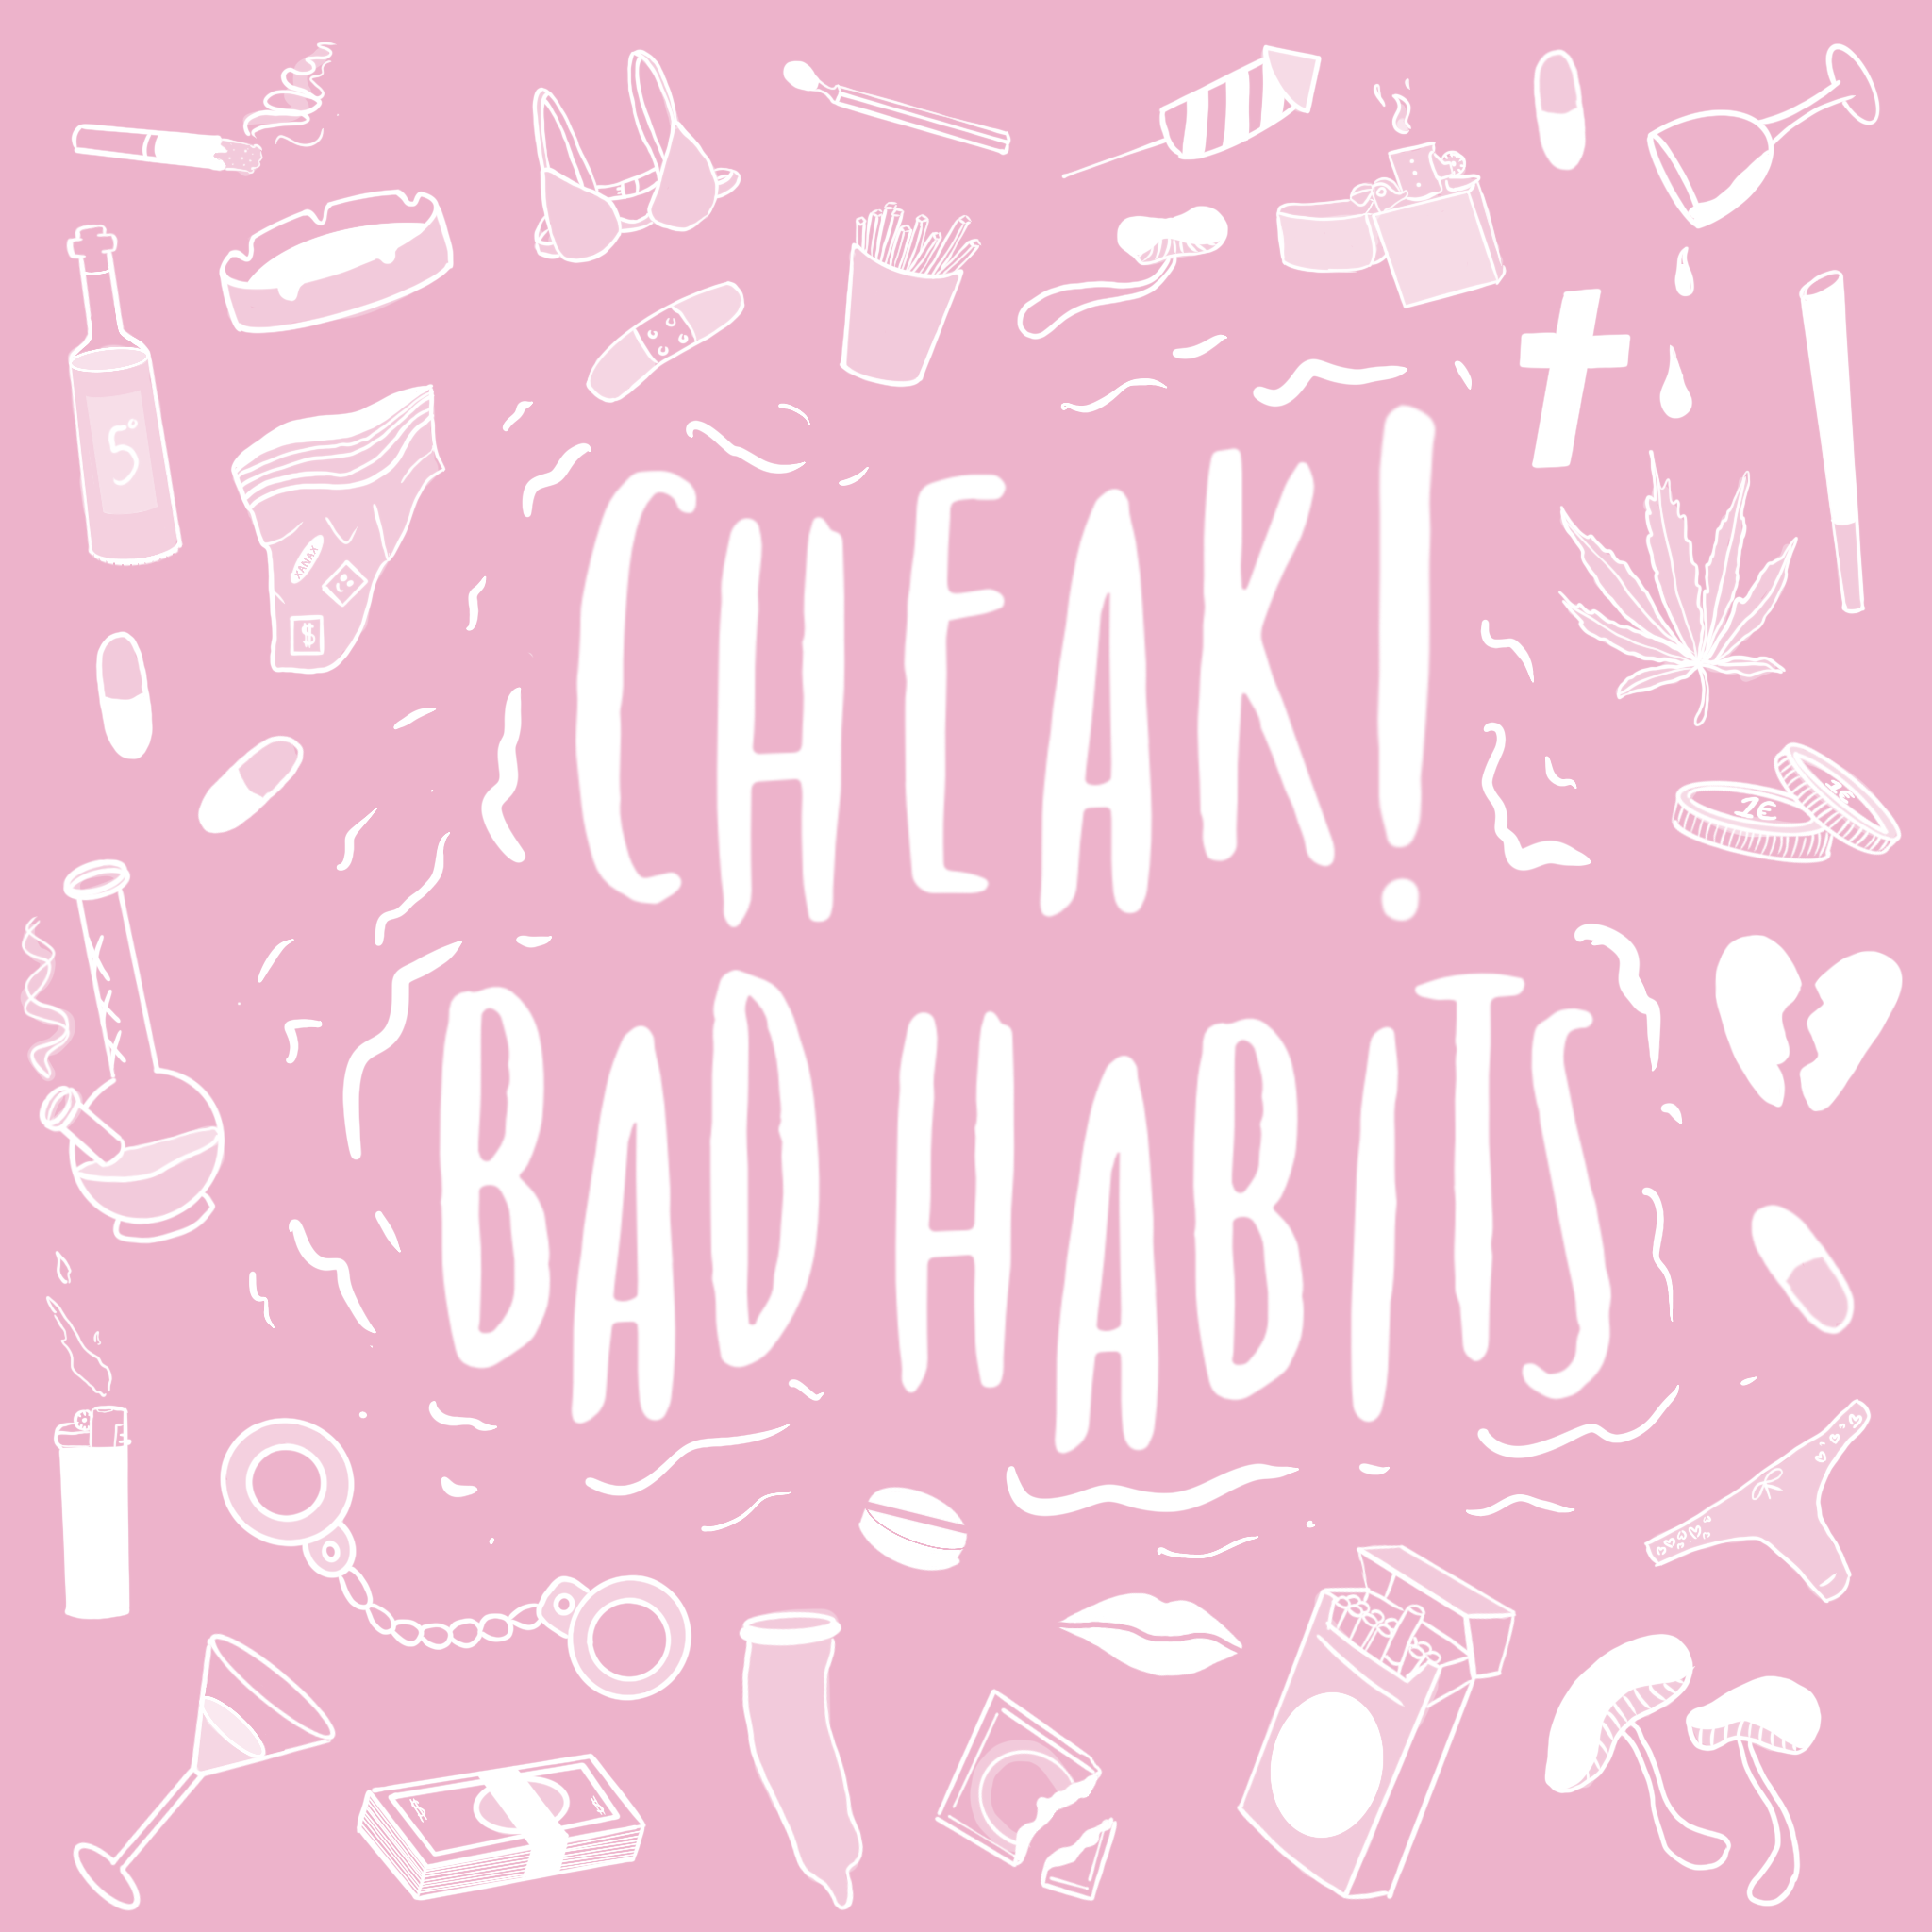 CHEAK! EP COVER-Front.png